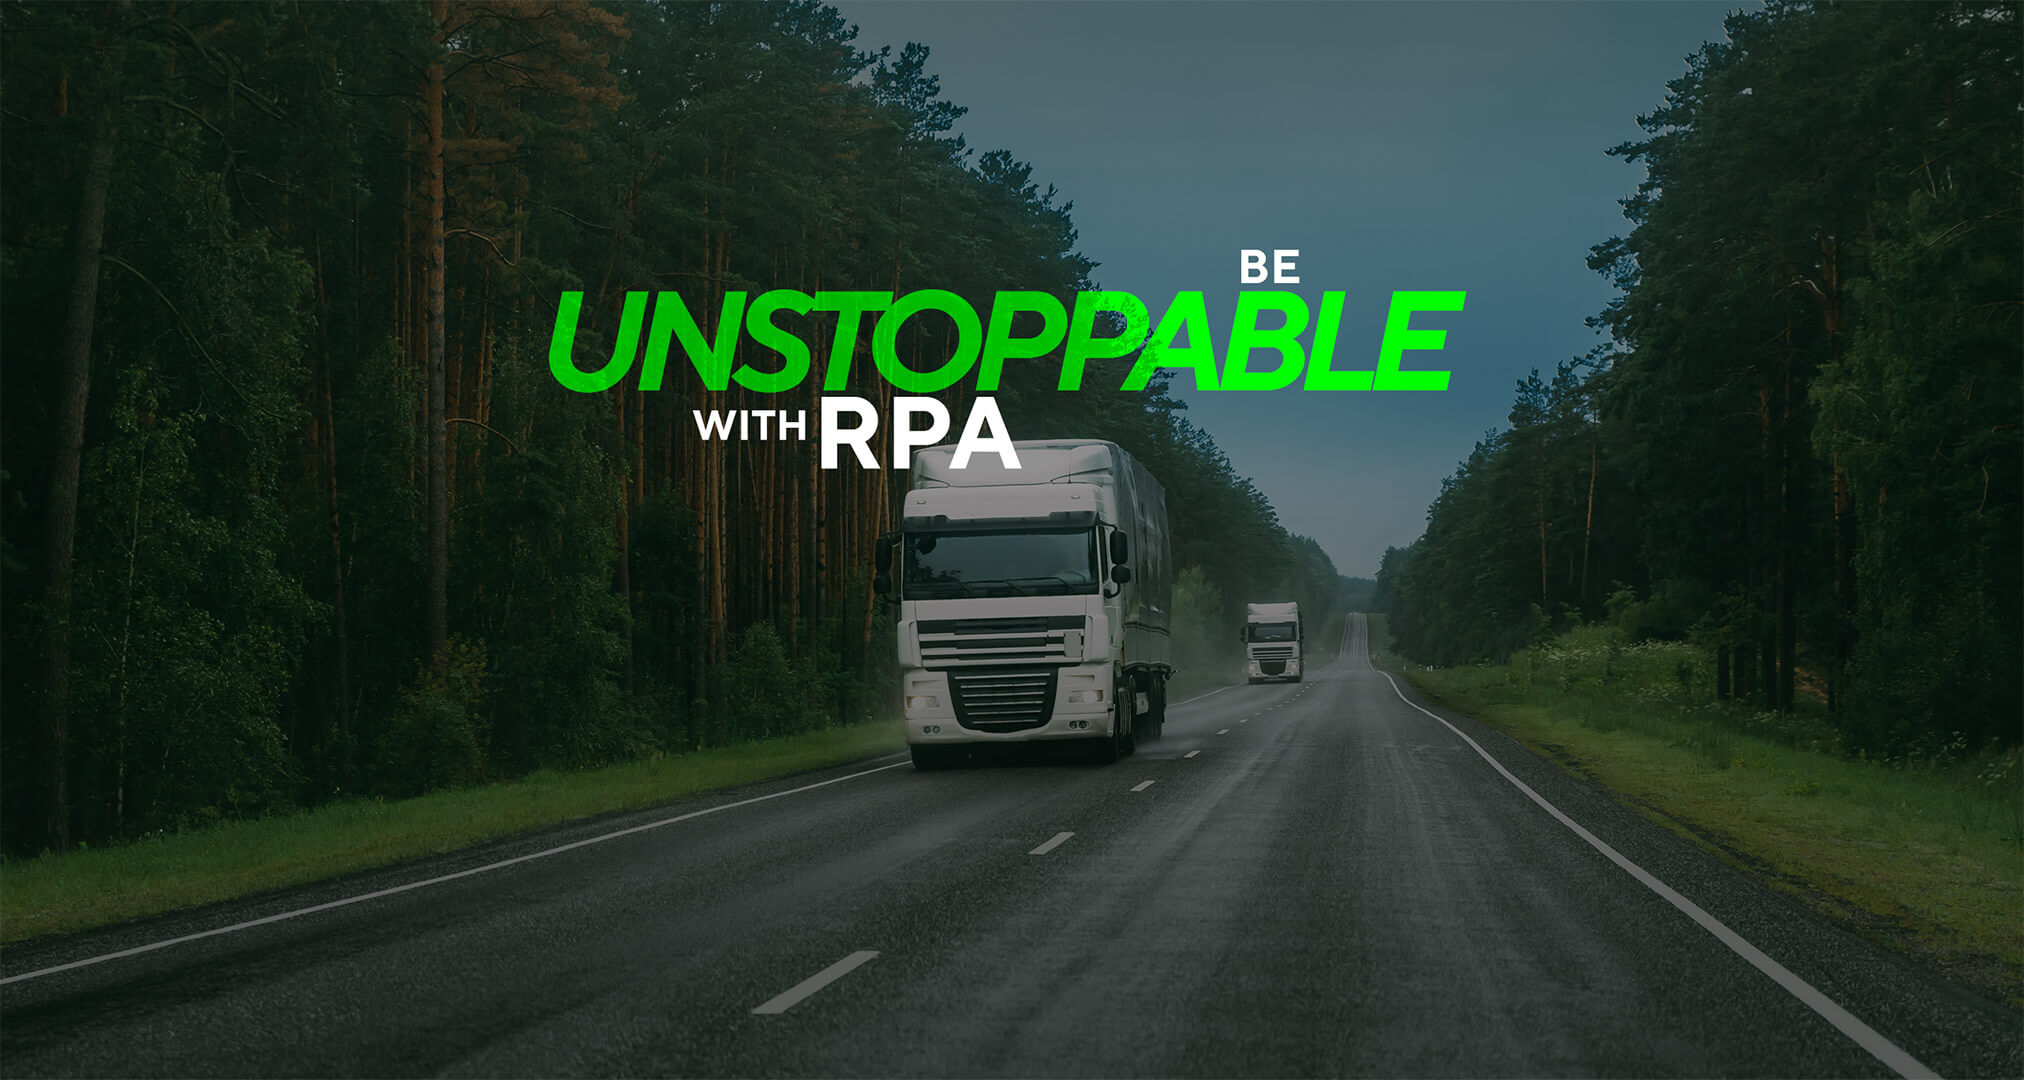 Fuel Bill Processing Time Reduced By 86% using RPA  solutions - Case Study